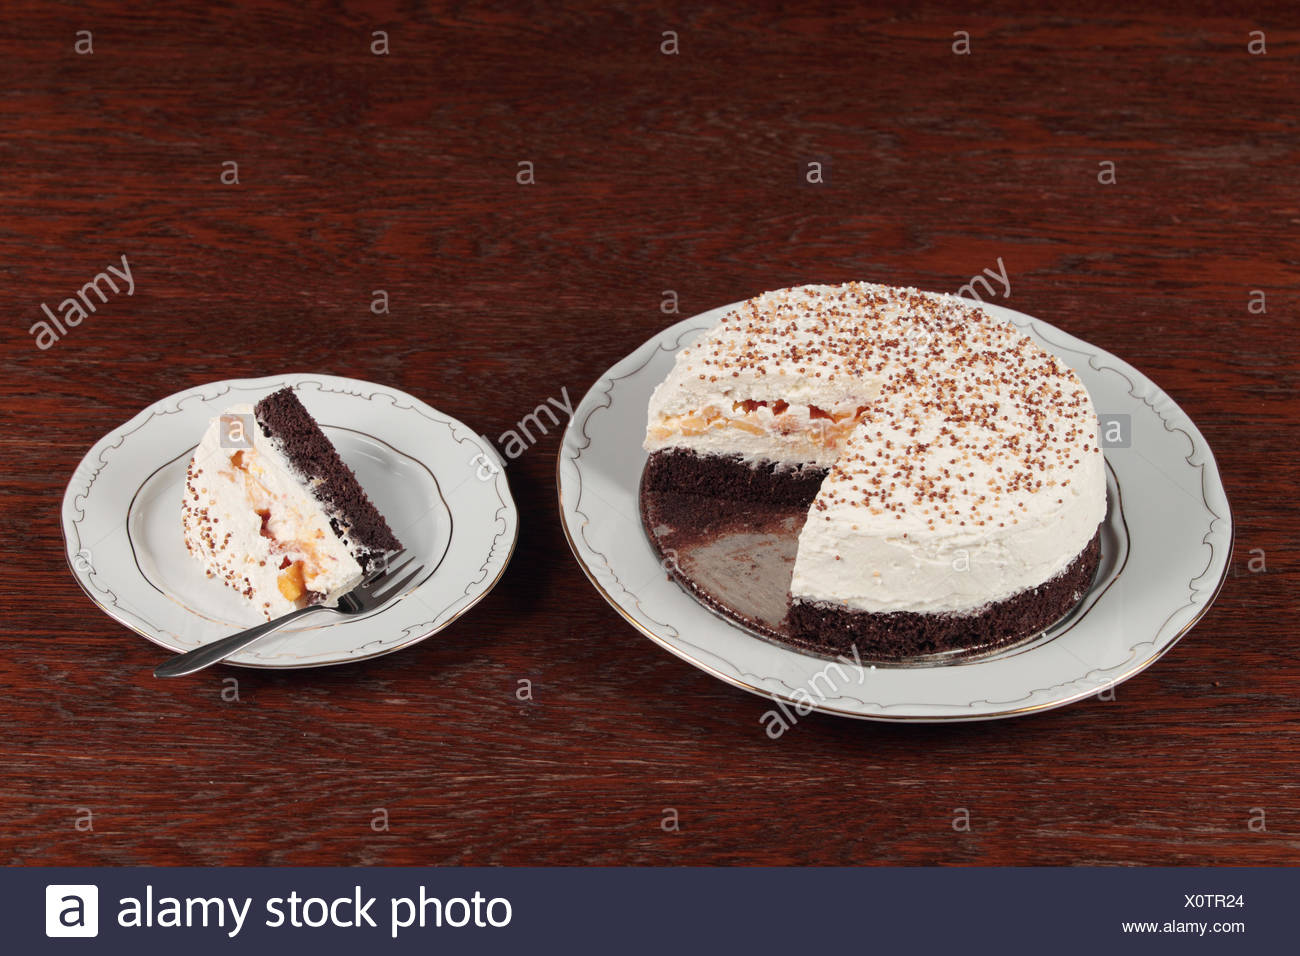 A delicious cake, safe for sufferers of diabetes mellitus type 1, created by a woman who also suffers. - Stock Image